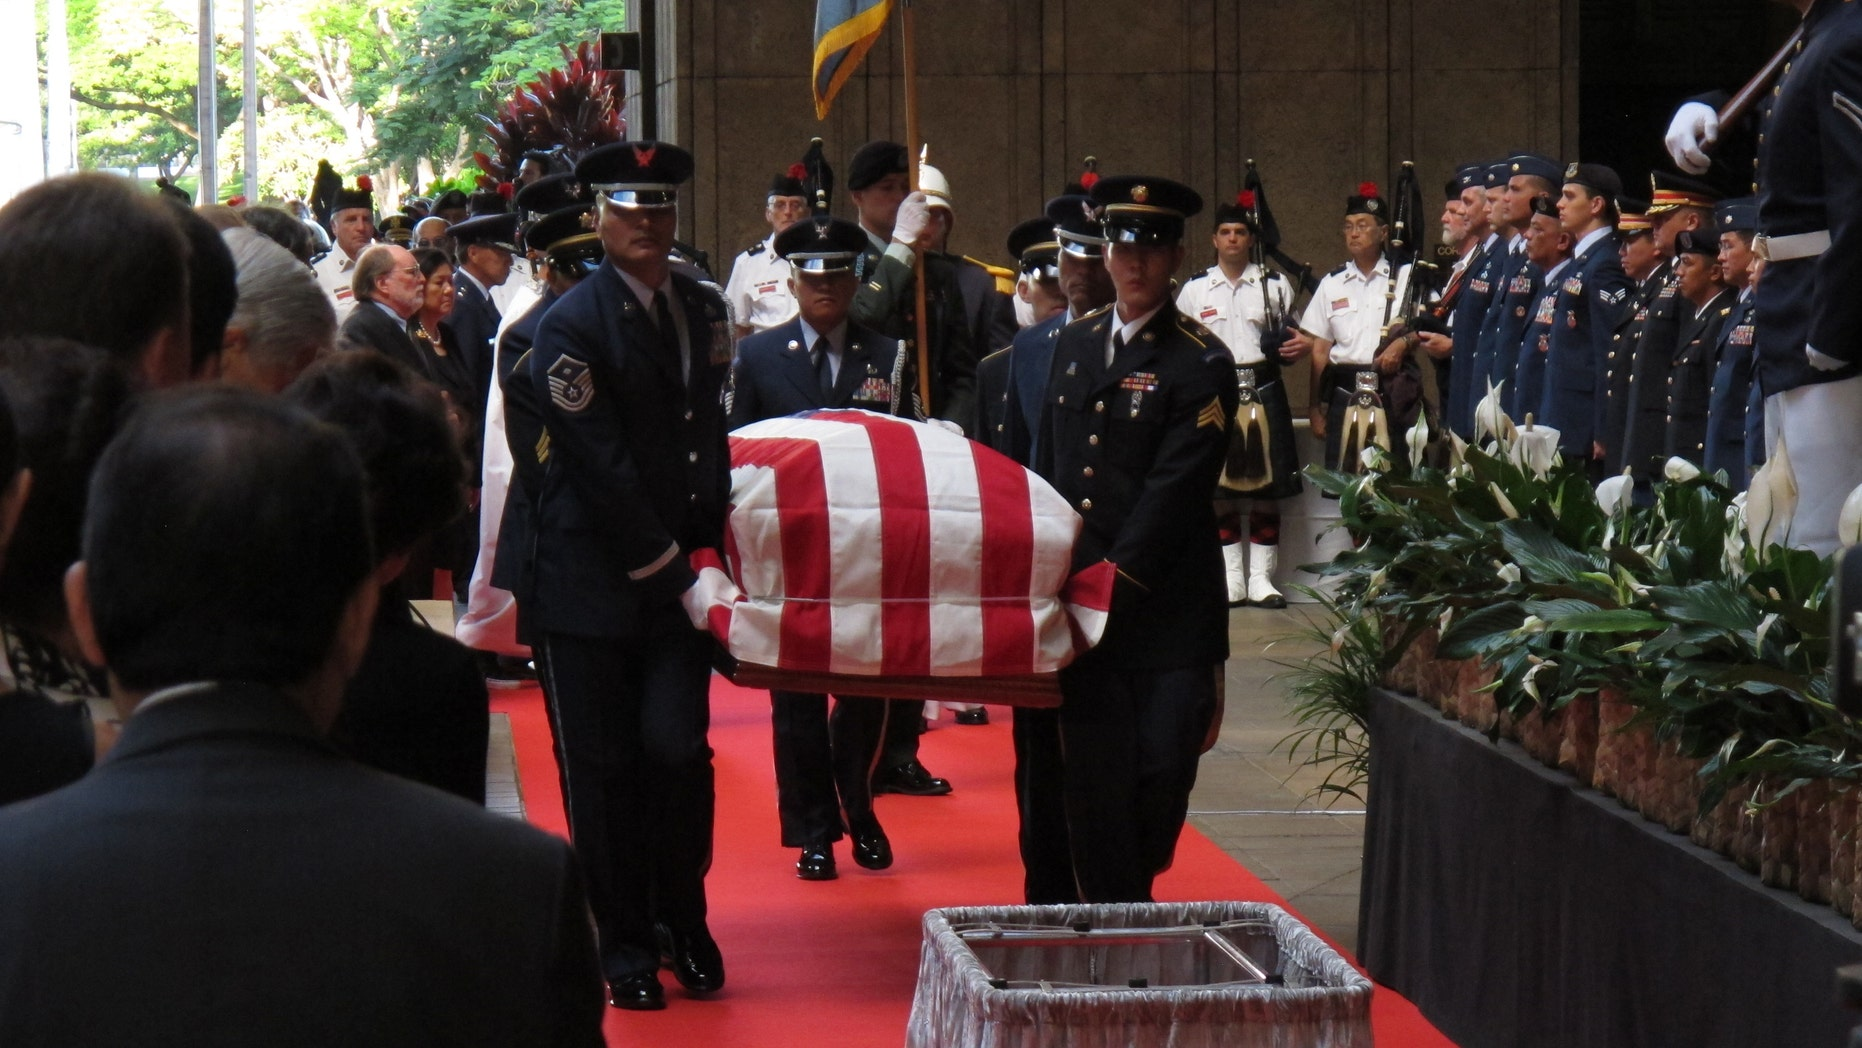 Saturday, Dec. 22, 2012: Pallbearers carry the casket of Sen. Daniel Inouye into the courtyard of the Hawaii state Capitol during a visitation ceremony in Honolulu.